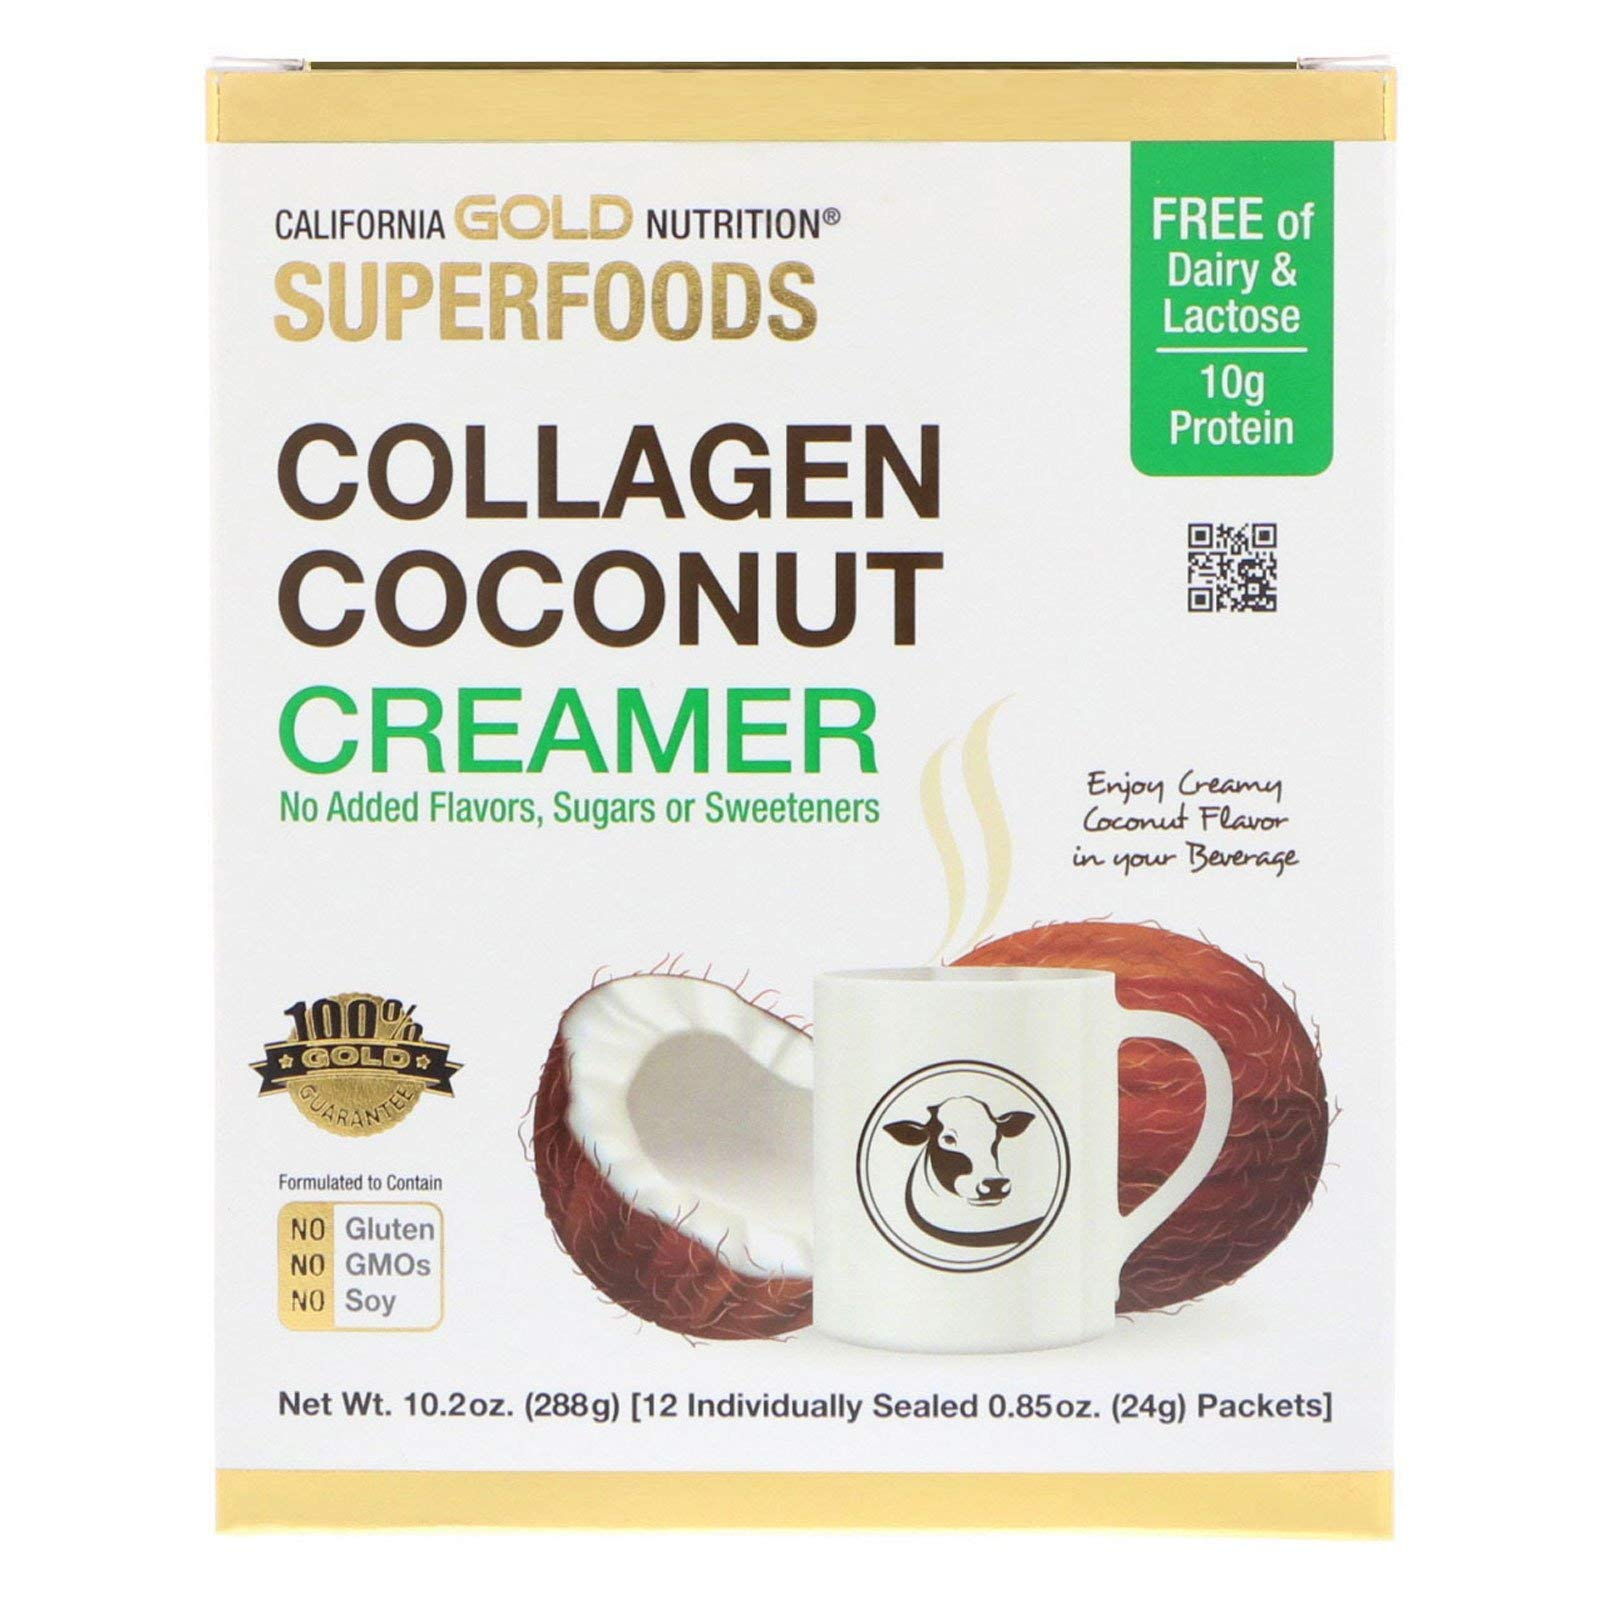 California Gold Nutrition Superfoods Collagen Coconut Creamer Unsweetened 12 Packets 0 85 oz 24 g Each